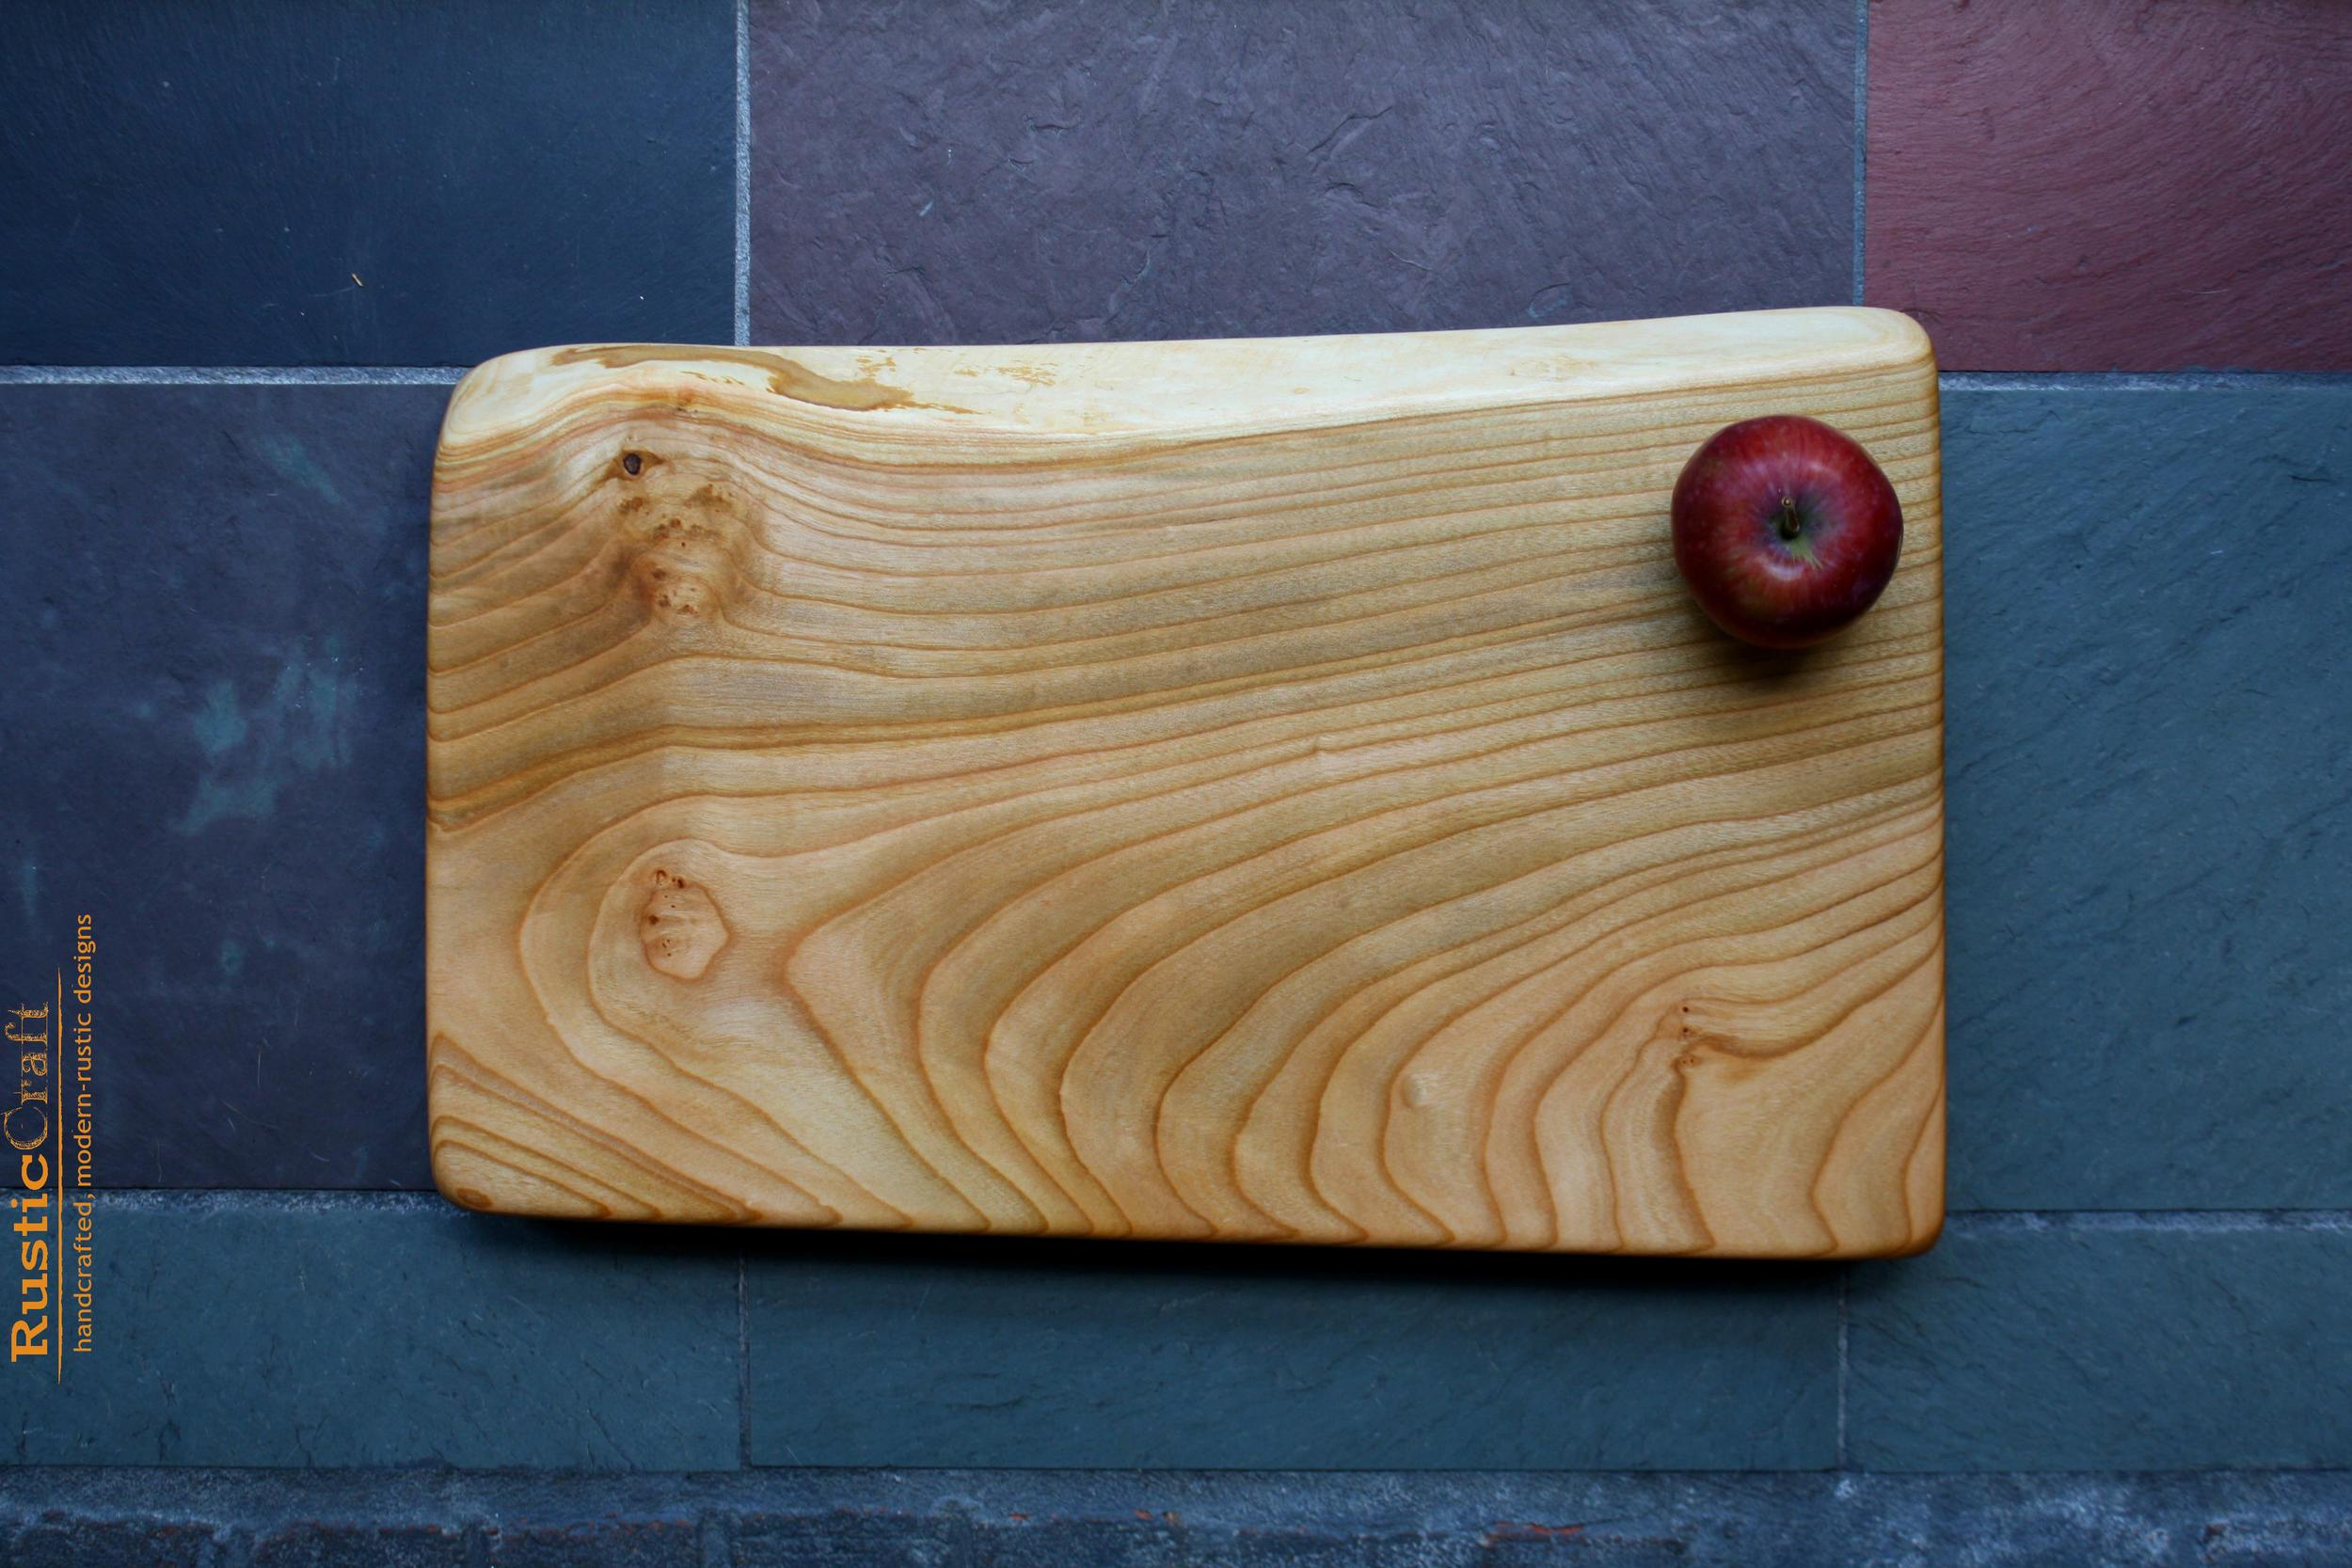 Rustic Wedding Gift - Personalized Kitchen Cutting Board - Large Wide Curvy Grain Thick Cherry Block 421